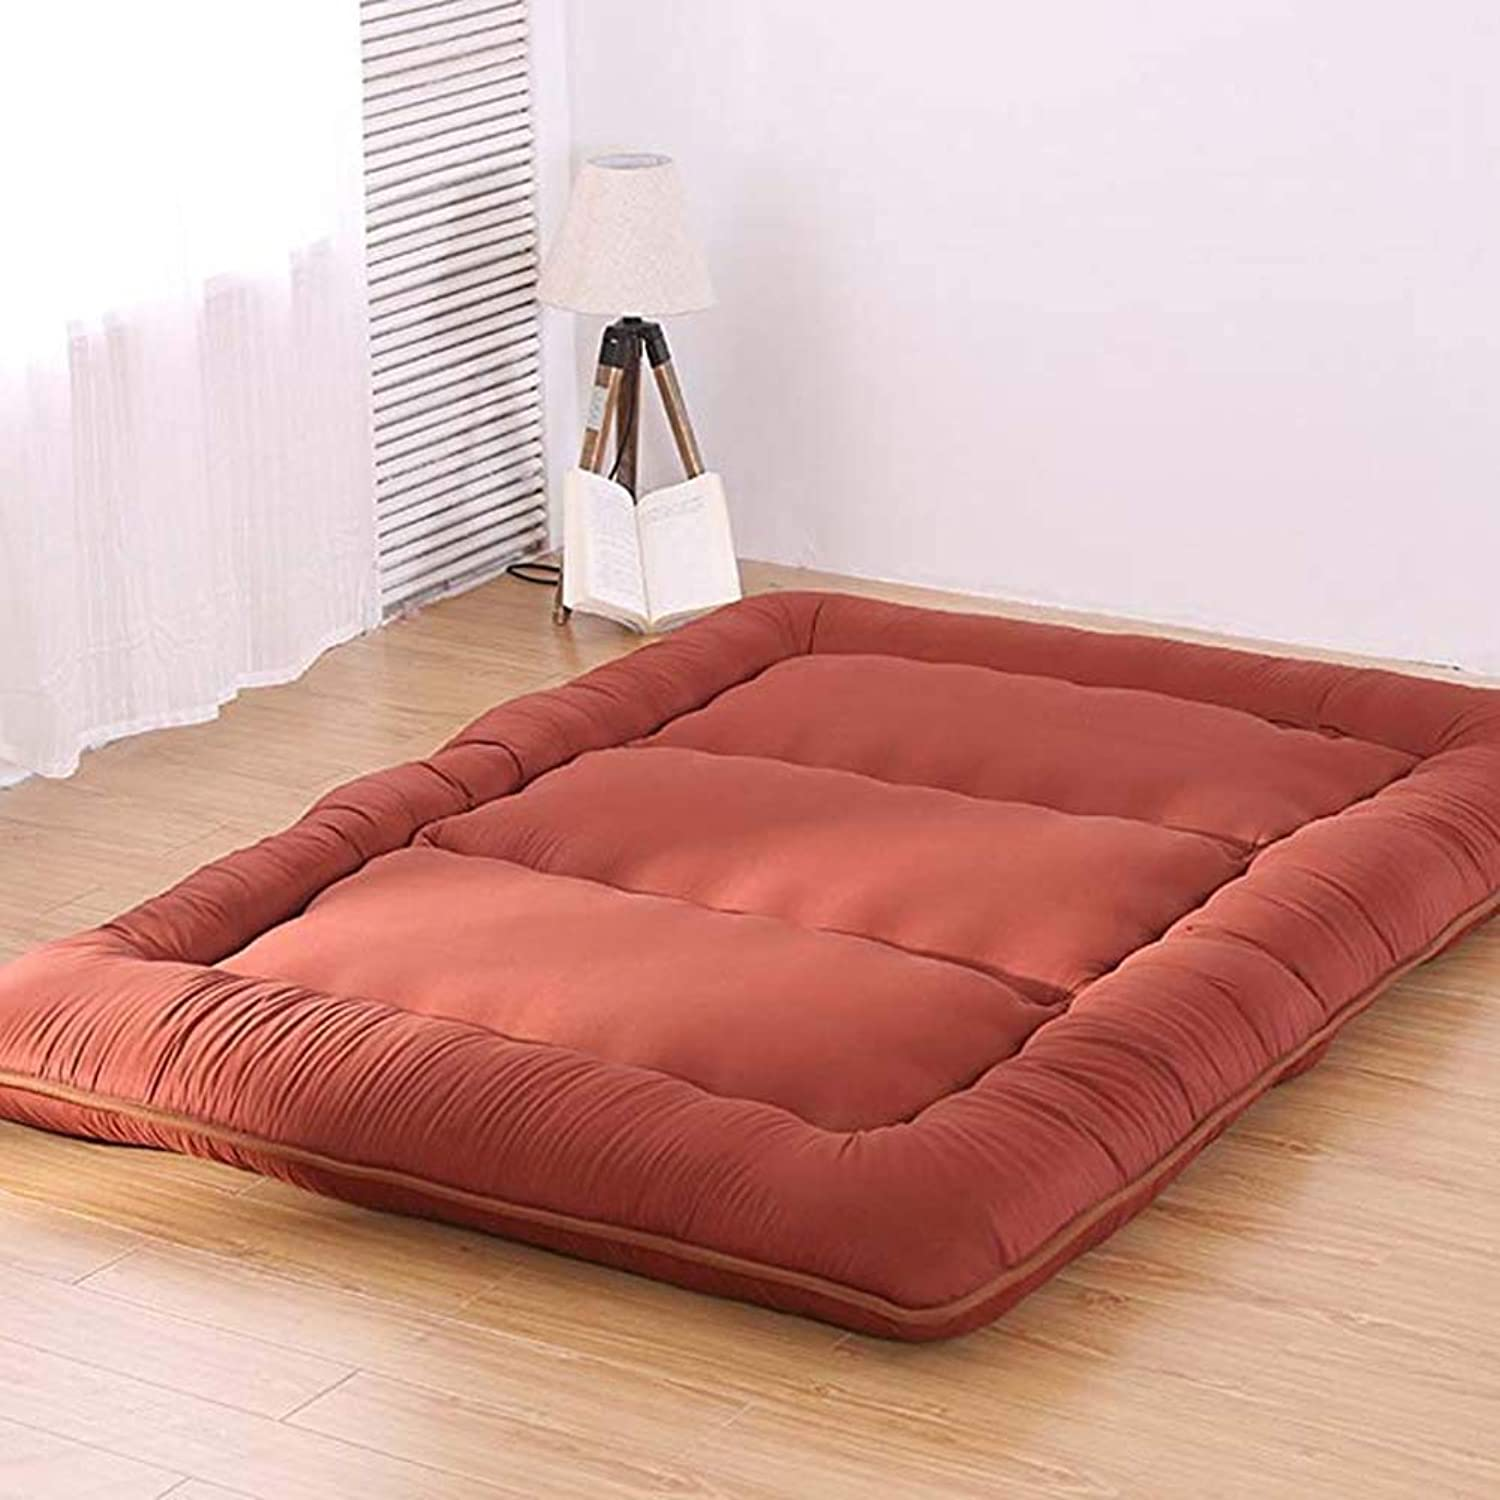 Japanese Thai Floor Rolling Futon Mattresses, Traditional Futon Mattress, Foldable Roll Up Mattress, Foldable Cushion Mats, Yoga,D,150x200cm(59x79inch)